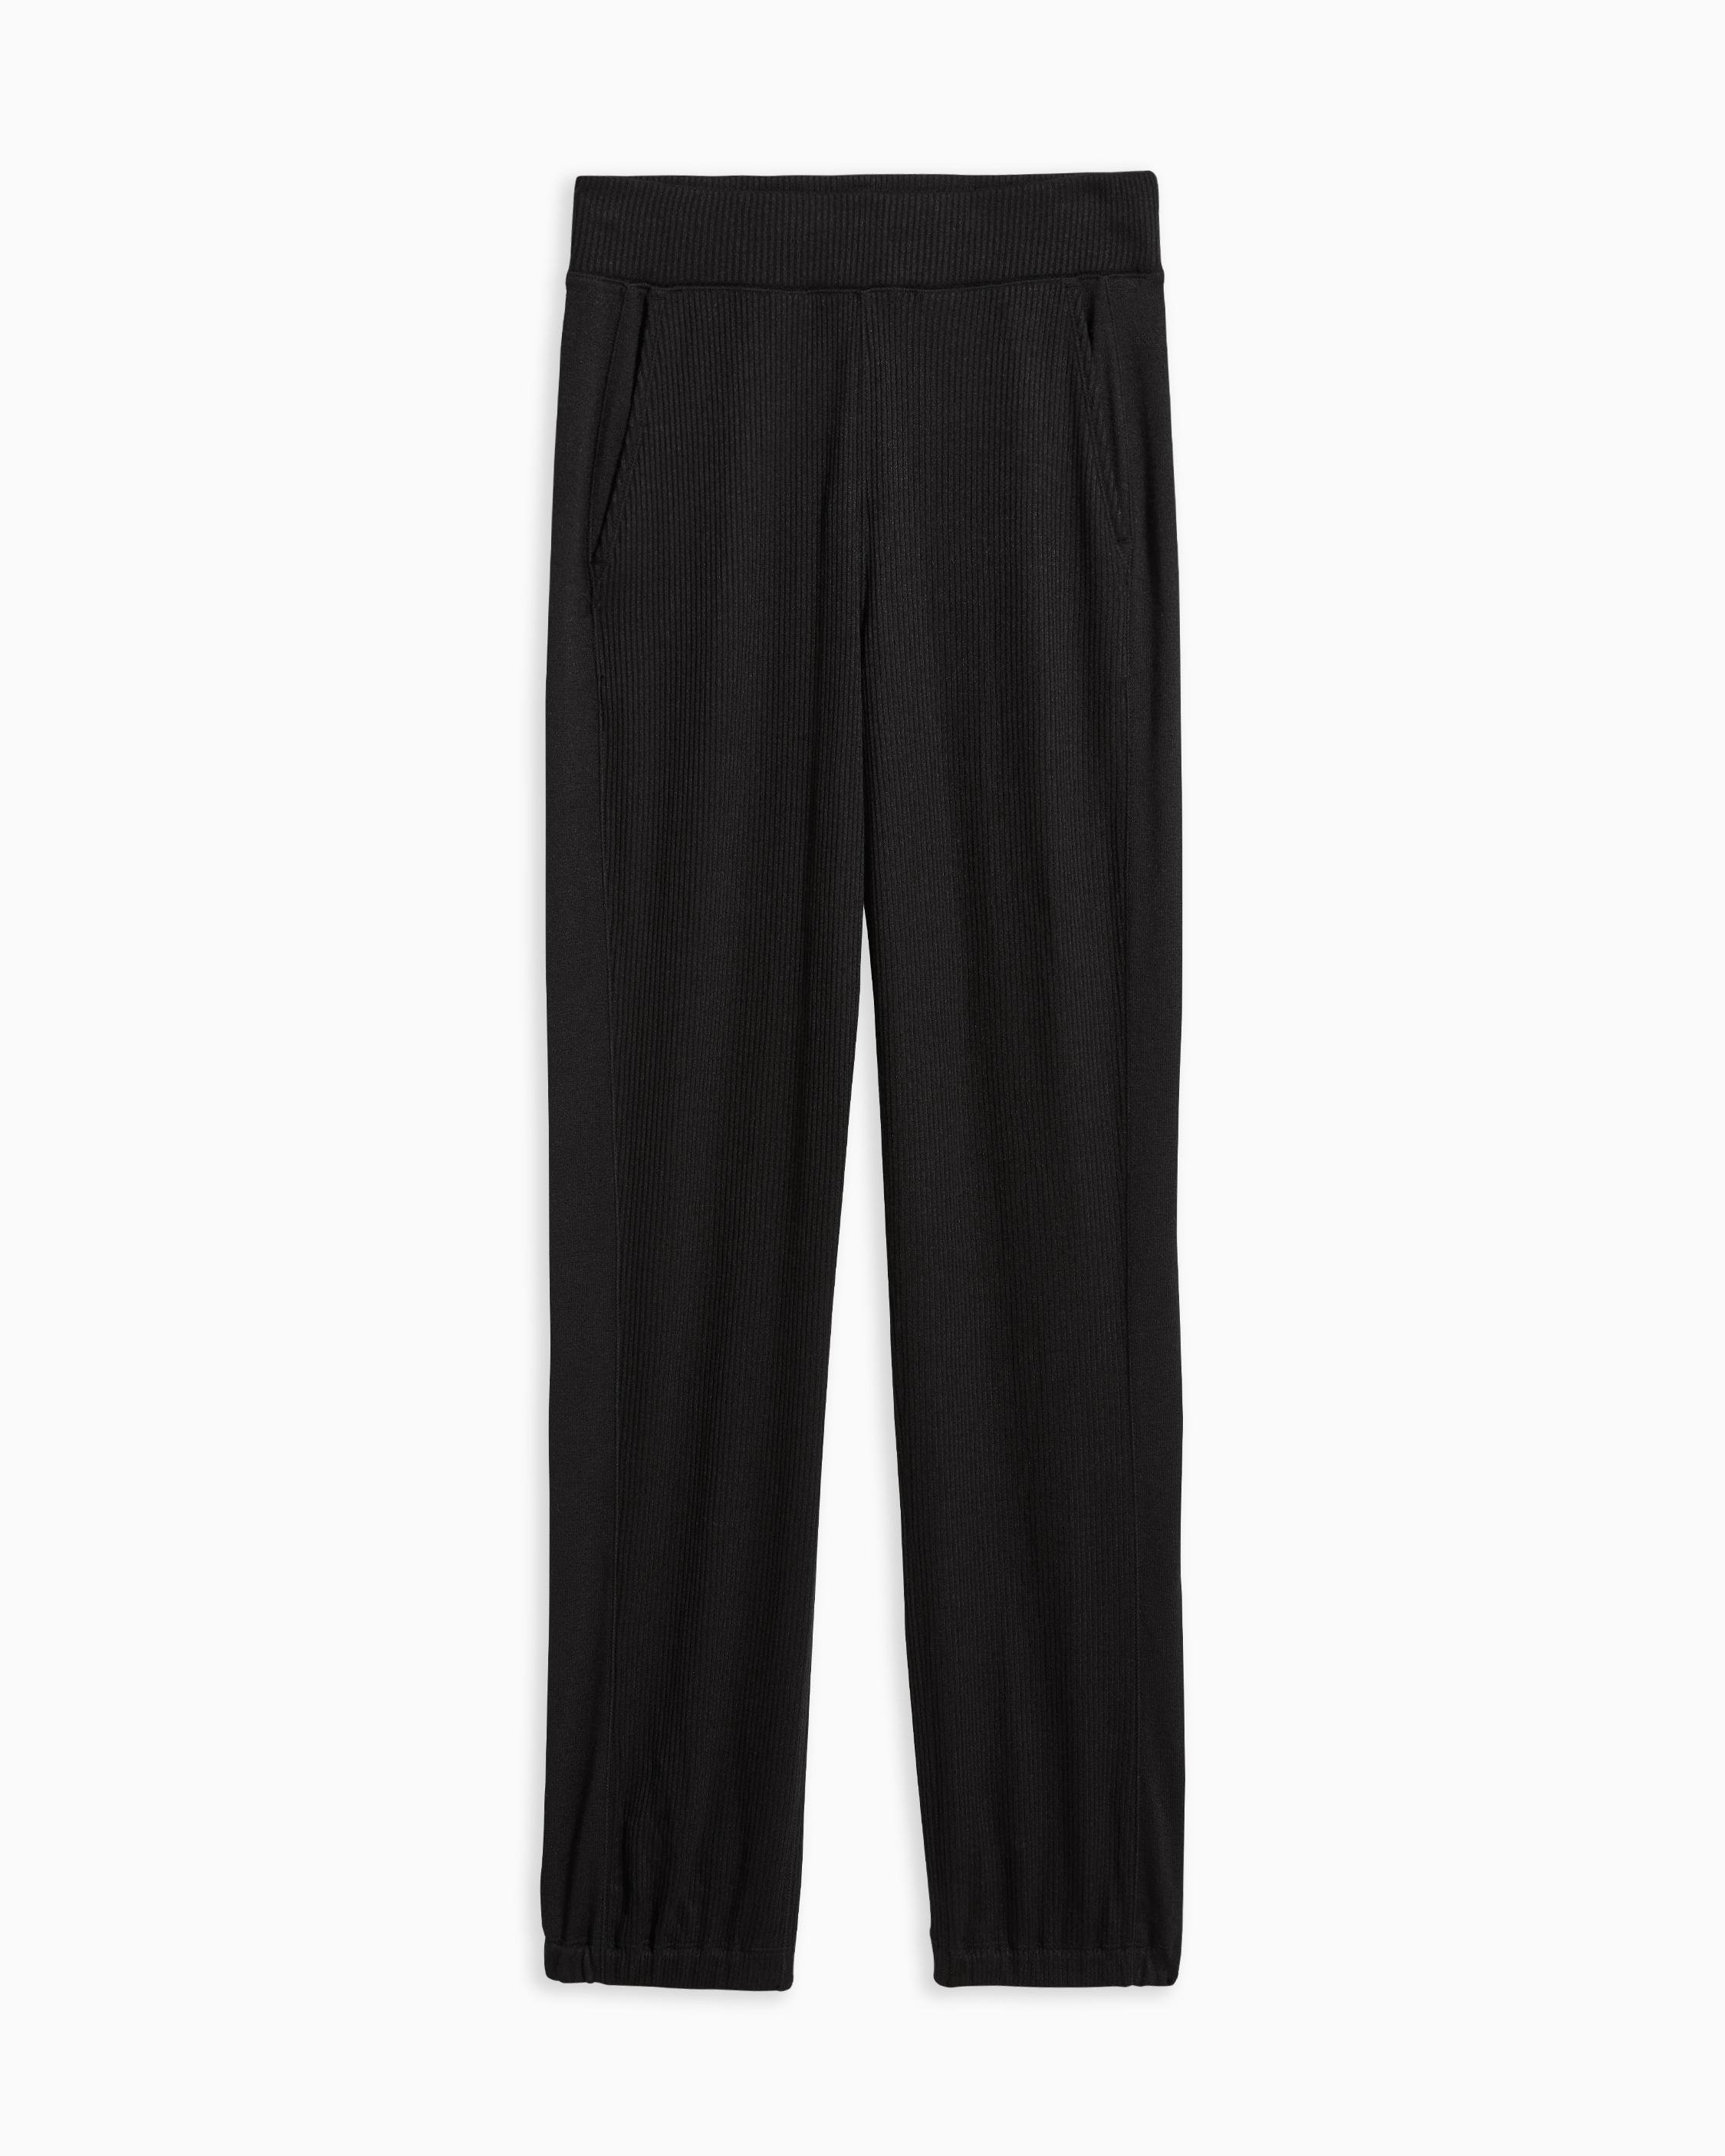 The knit jersey pant 5